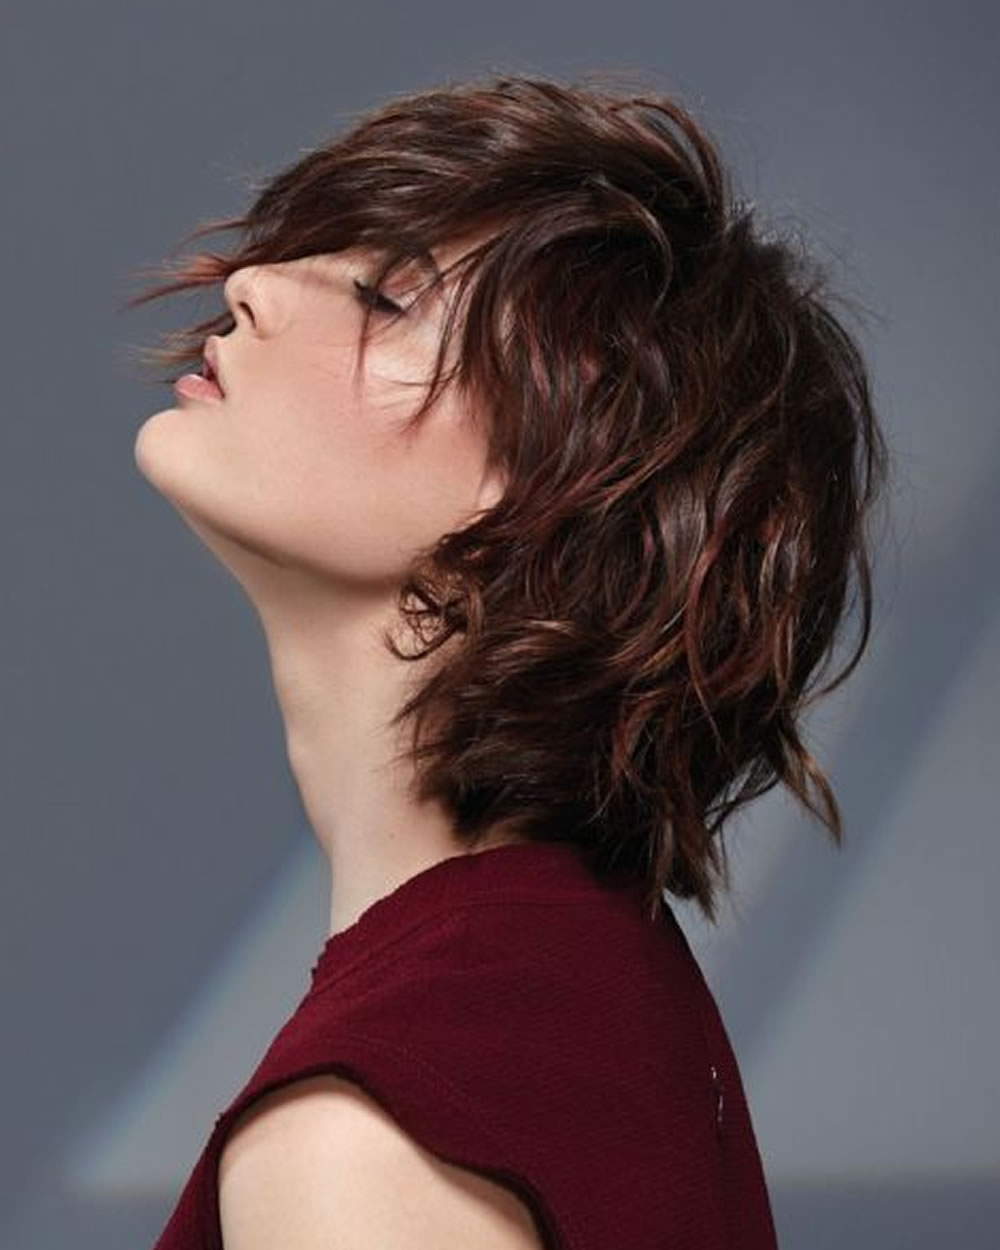 Hair Cuts : Bob Haircuts For Round Faces And Fine Hair Thick Female Intended For Short Haircuts For Round Faces Black Hair (View 19 of 25)